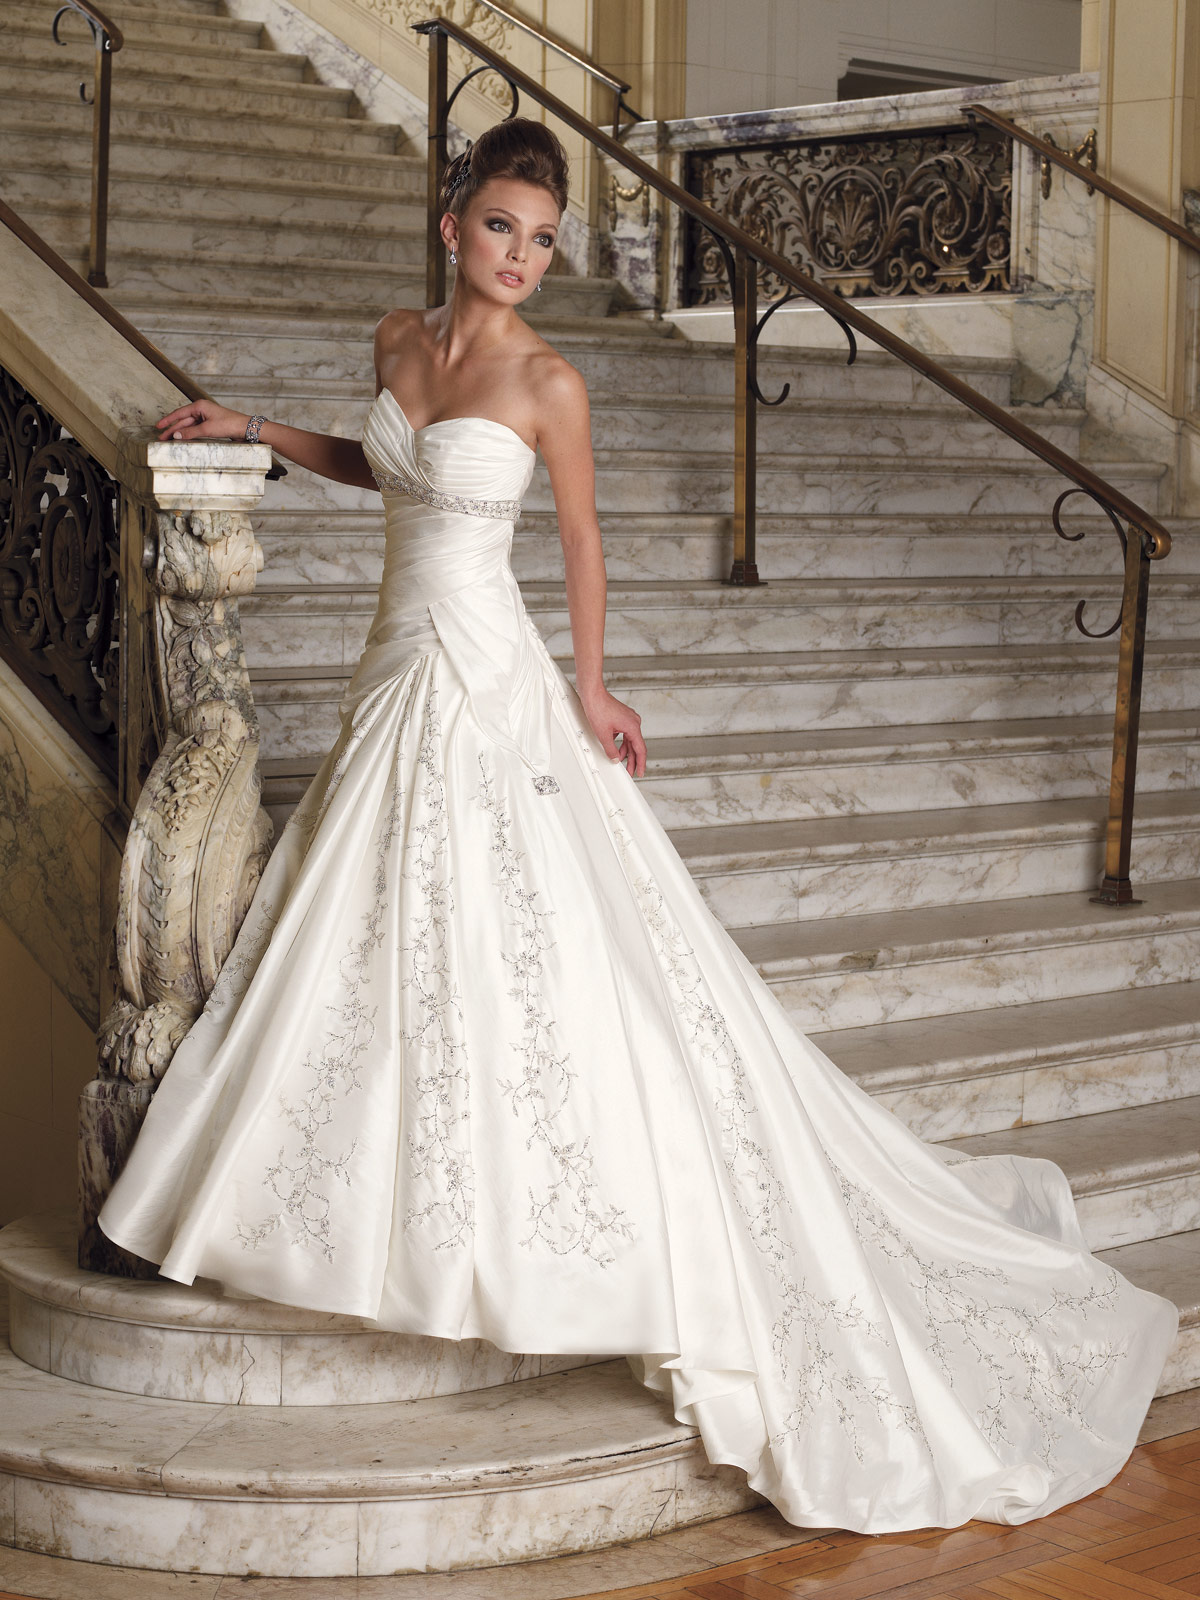 The Beautiful Bride Wedding Dress 75